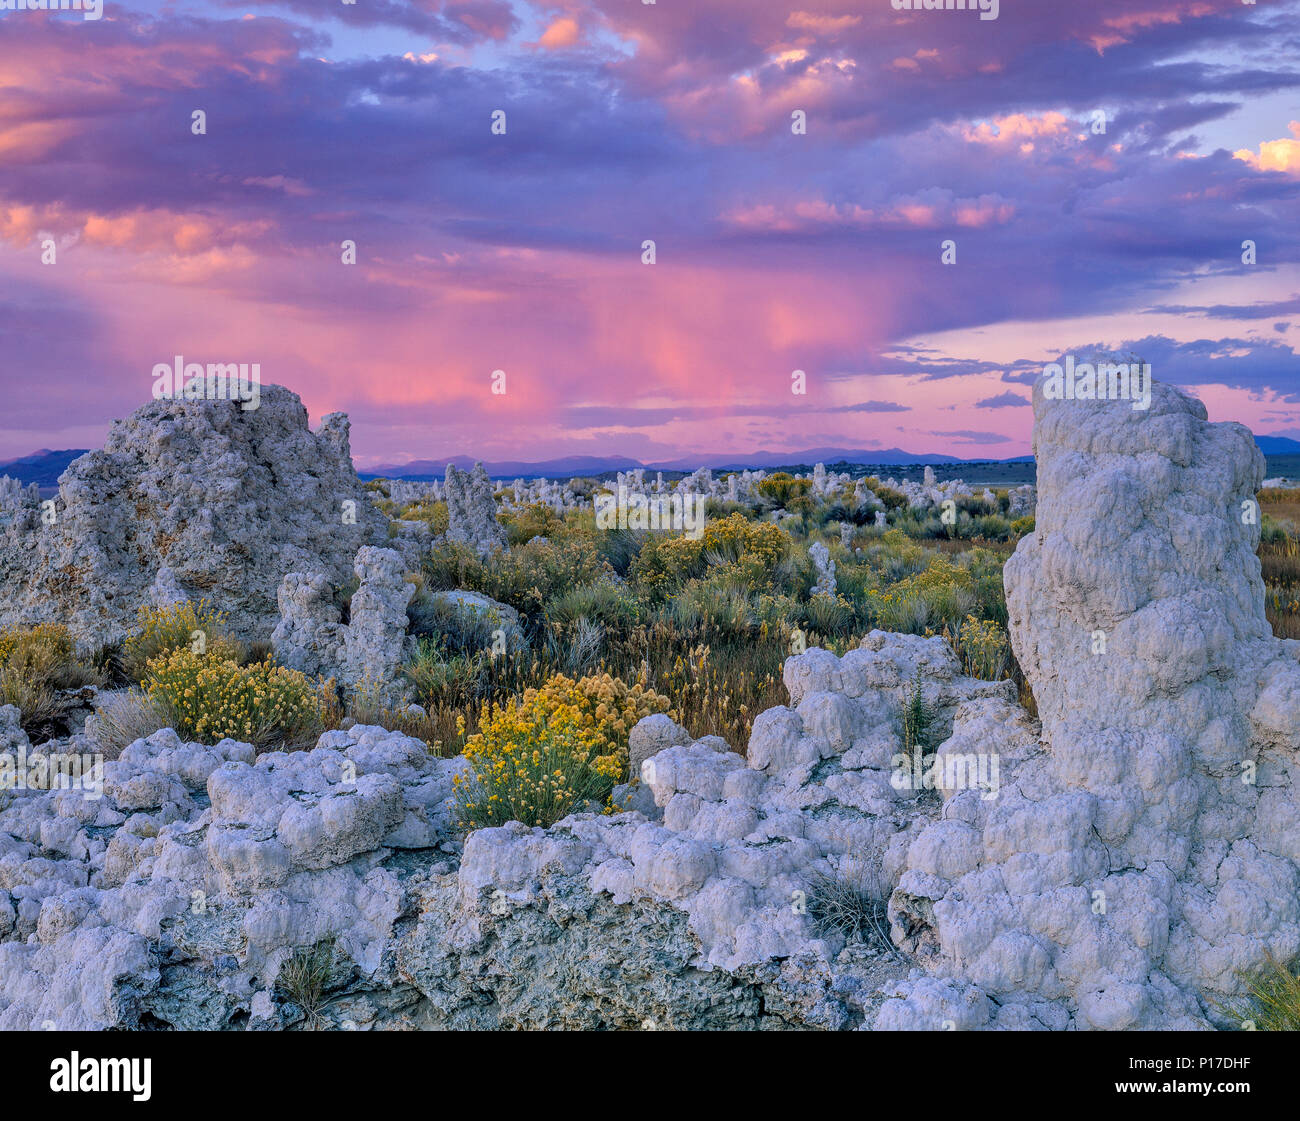 Sunset, Tufa Formations, Mono Lake, Mono Basin National Forest Scenic Area, Inyo National Forest, Eastern Sierra, California - Stock Image